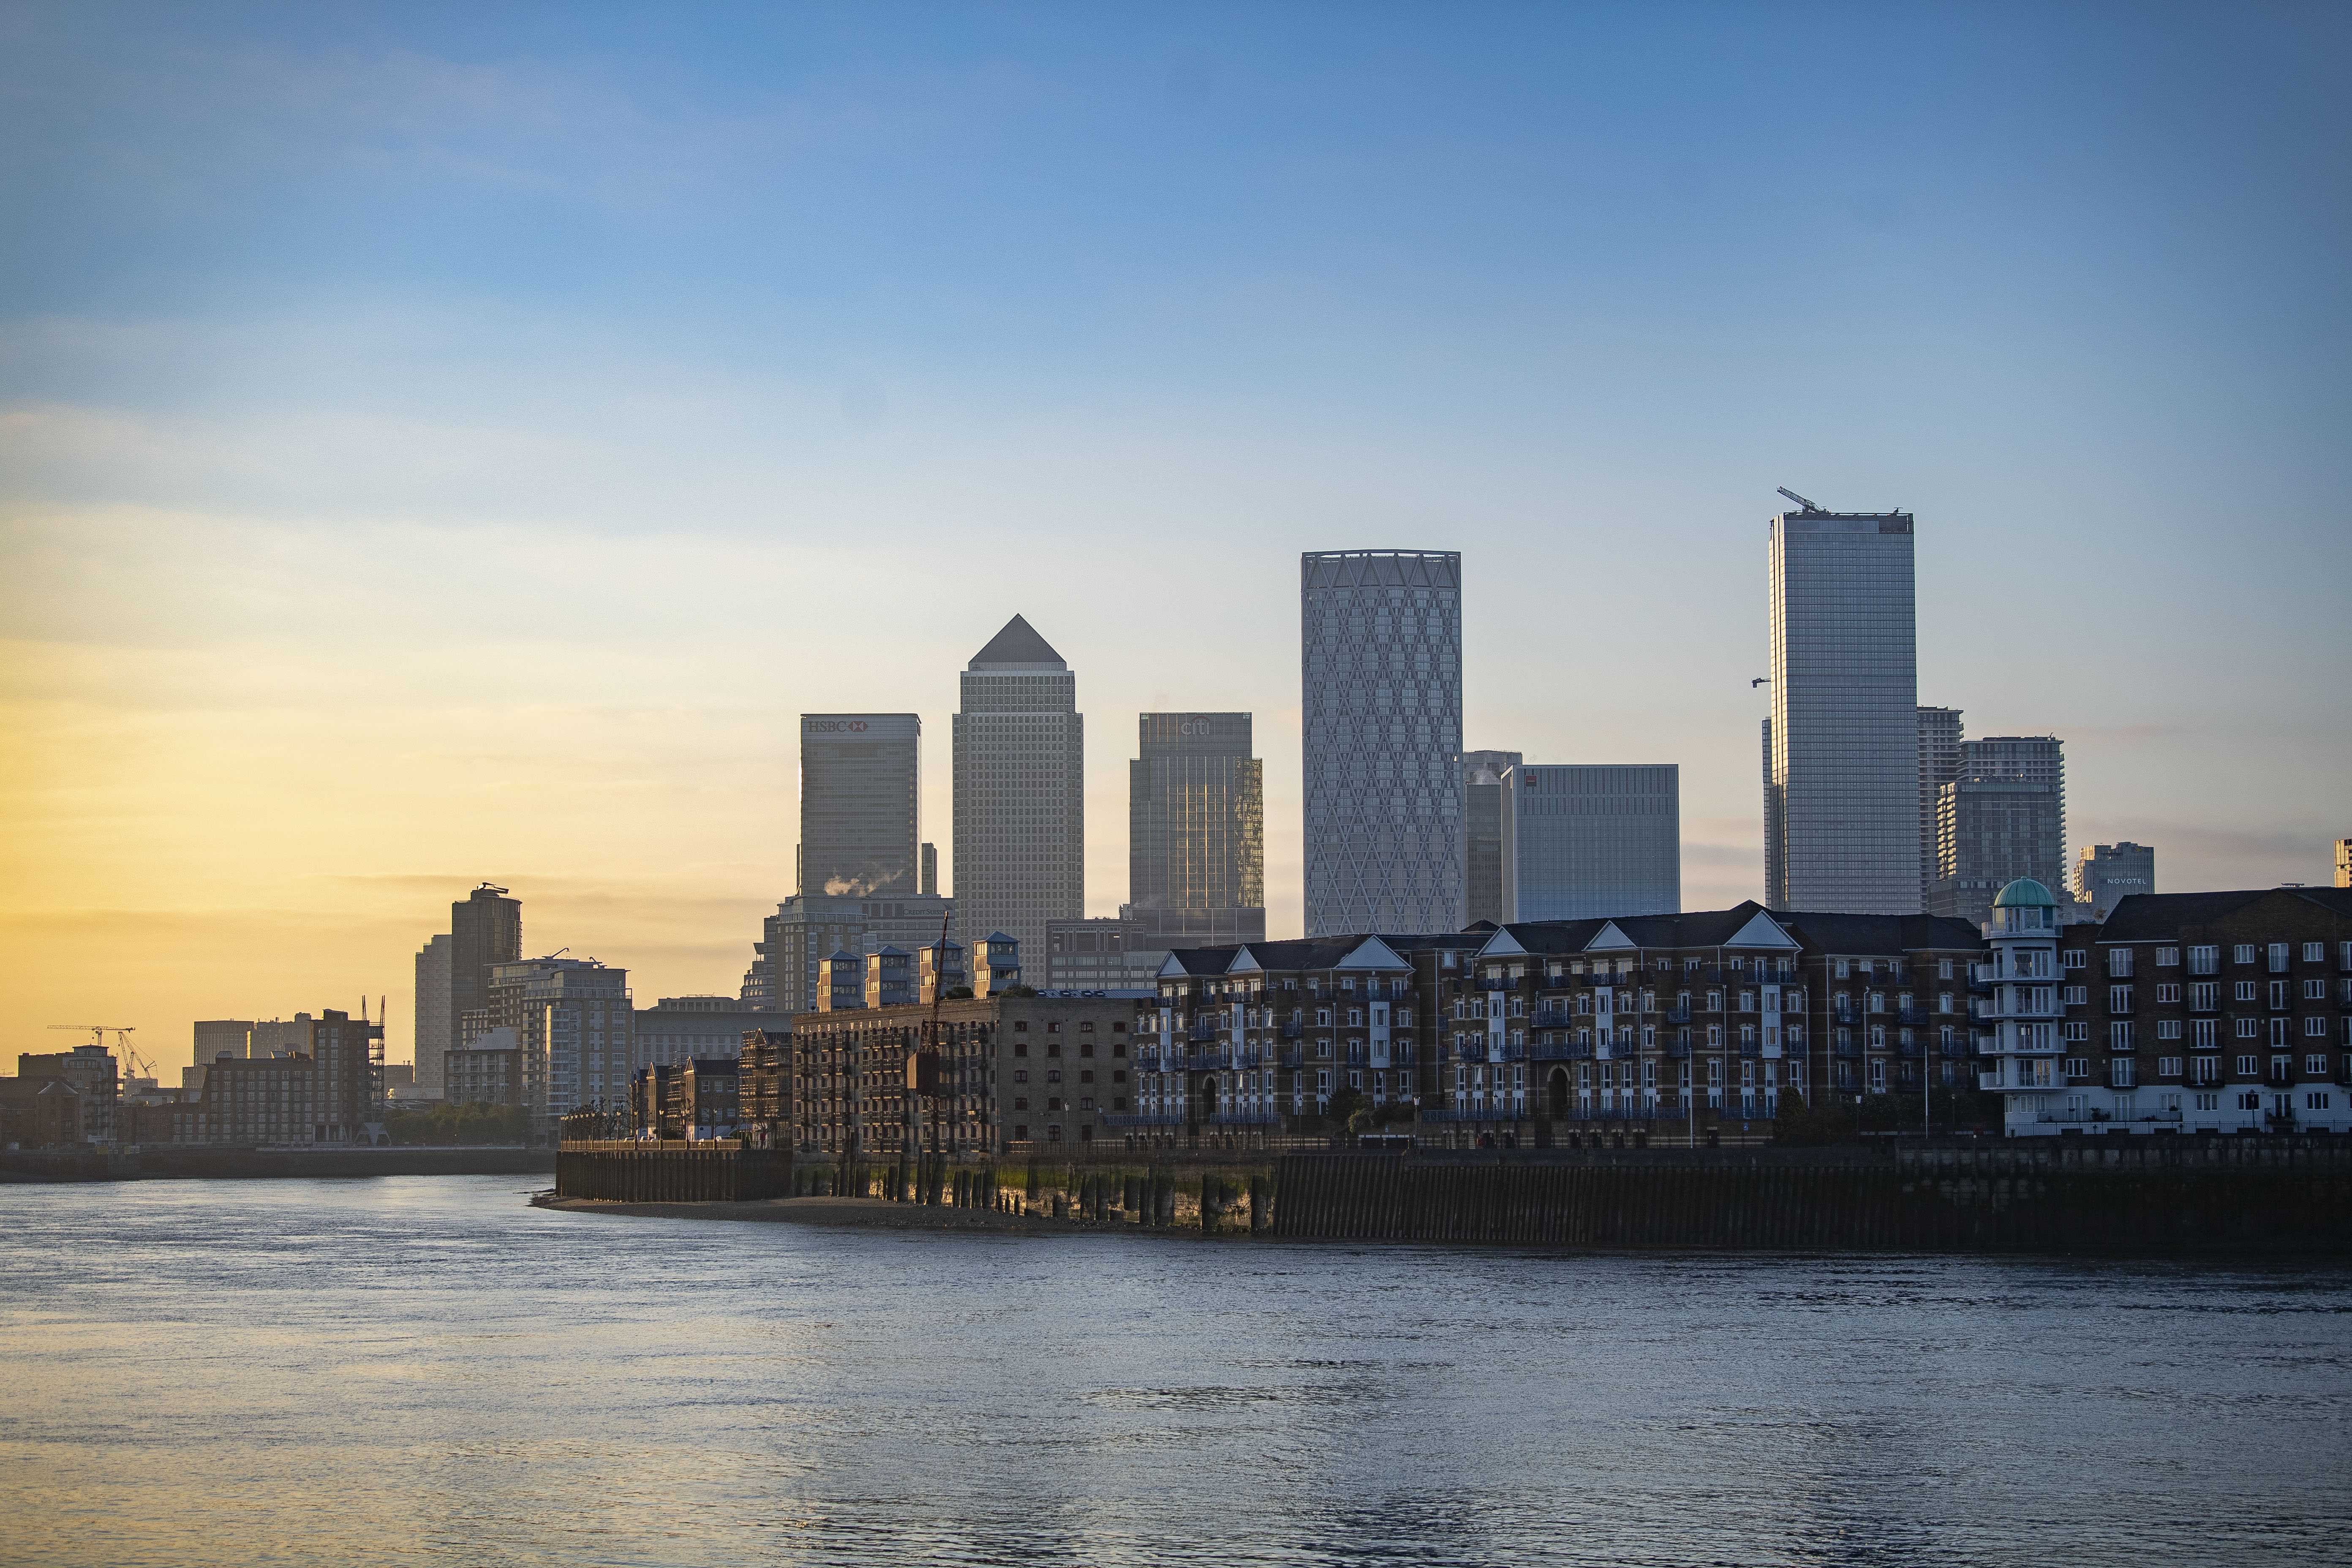 The sun rises over Canary Wharf in east London as the UK continues in lockdown to help curb the spread of the coronavirus.